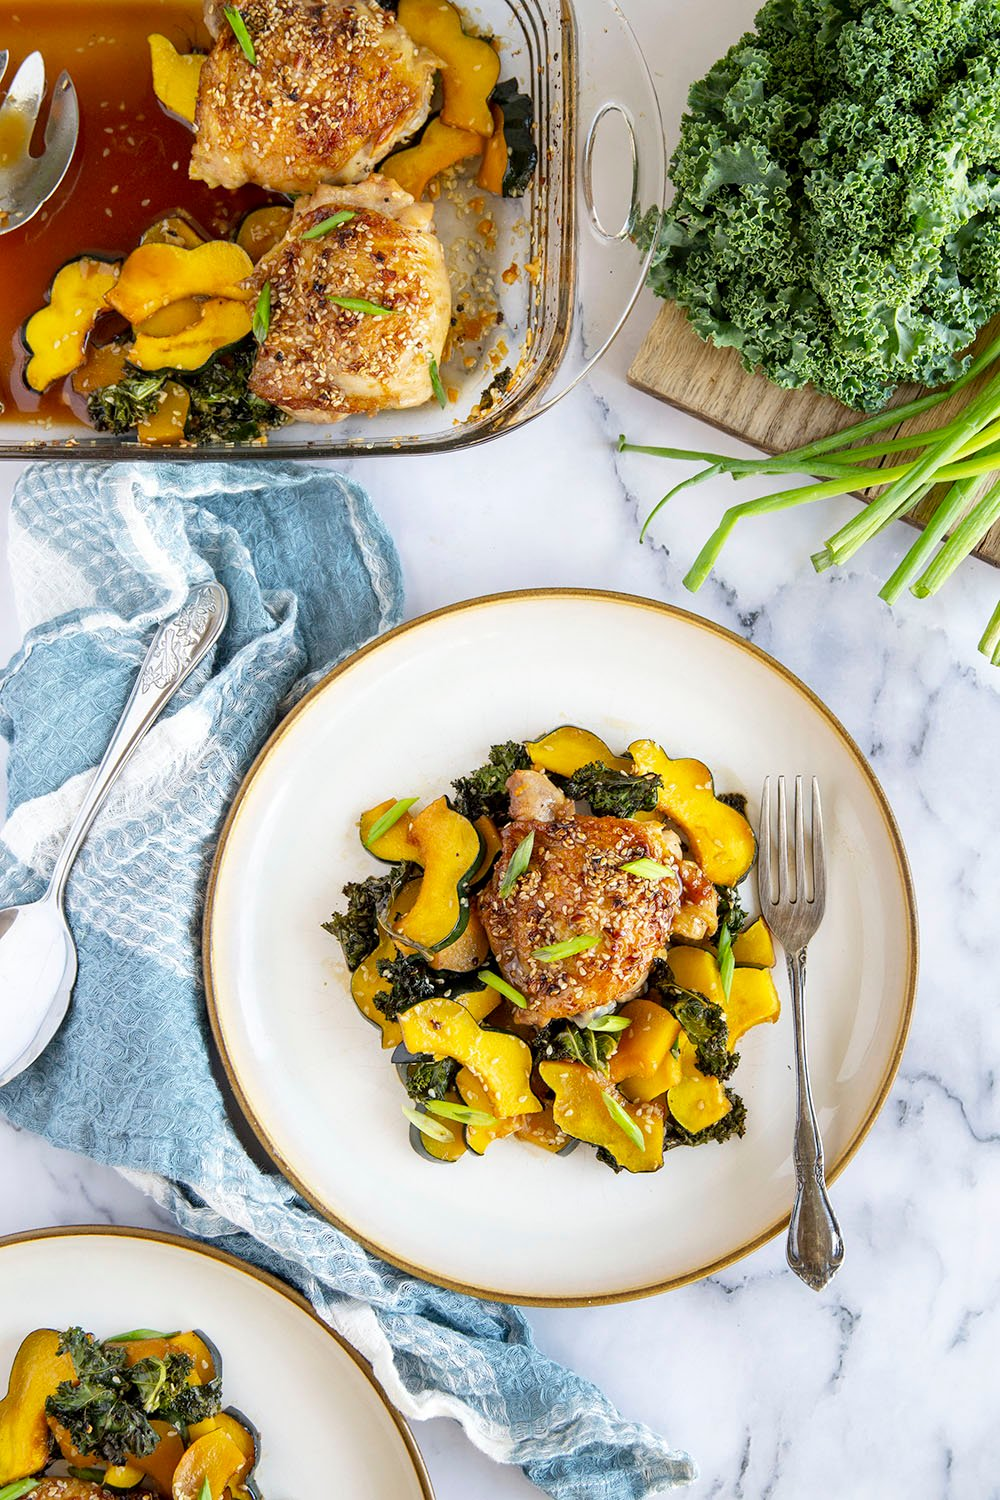 Honey sesame chicken thighs are roasted with tender acorn squash and kale in a flavorful honey sesame sauce for an easy dinner made in less than an hour!